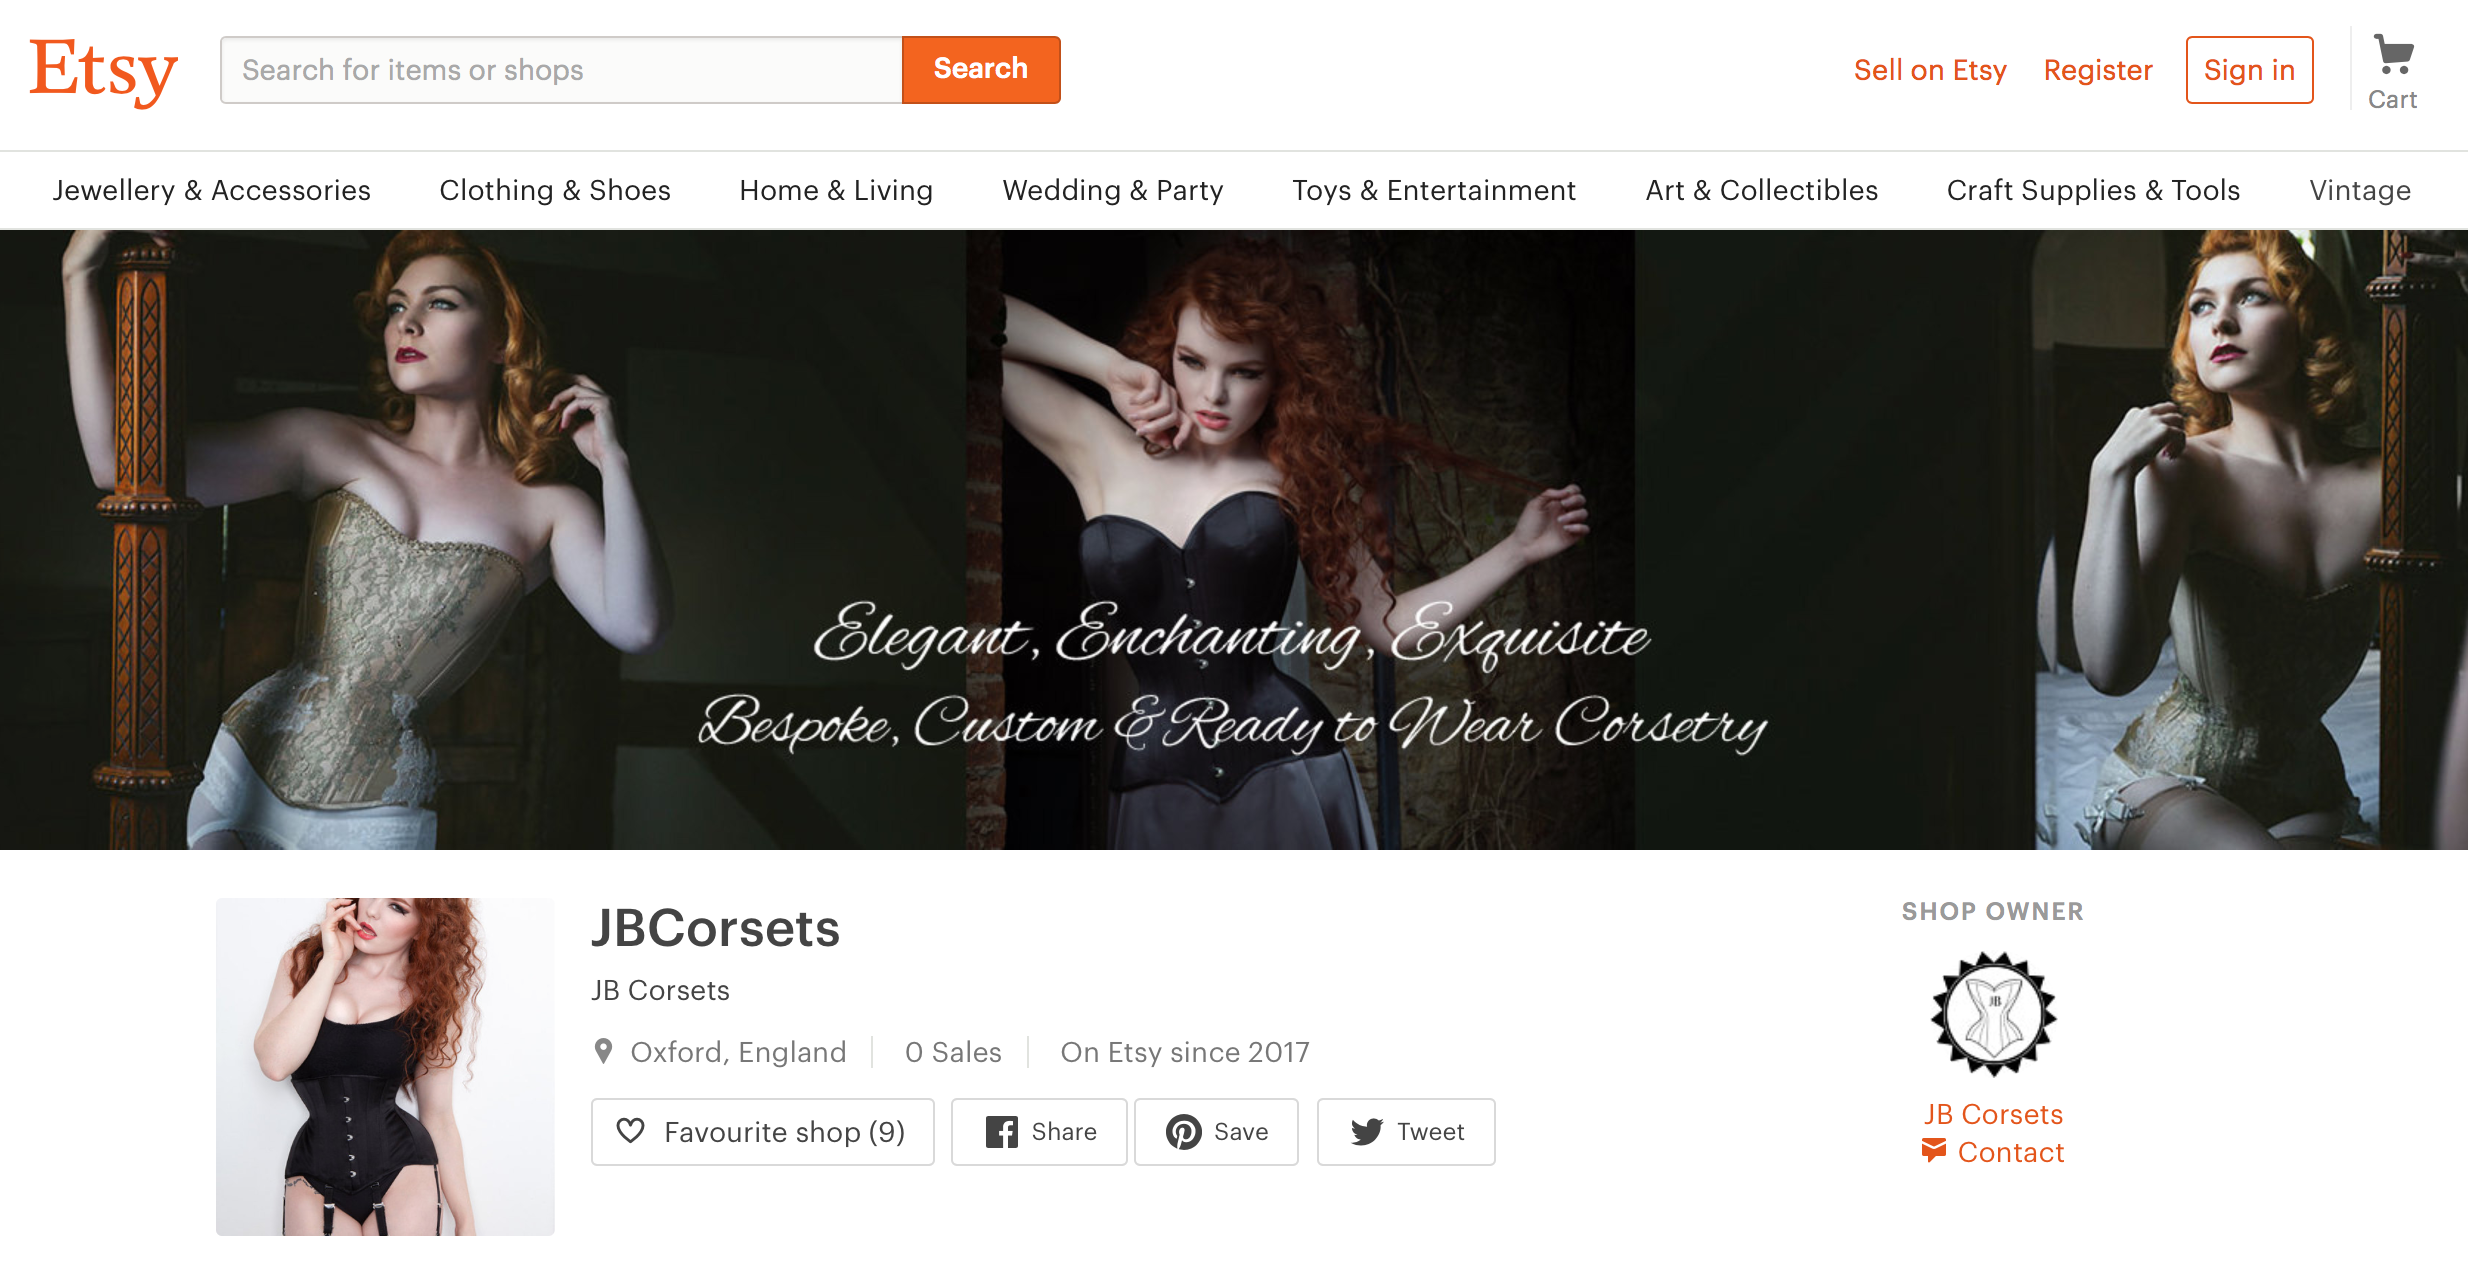 JBCorsets on Etsy